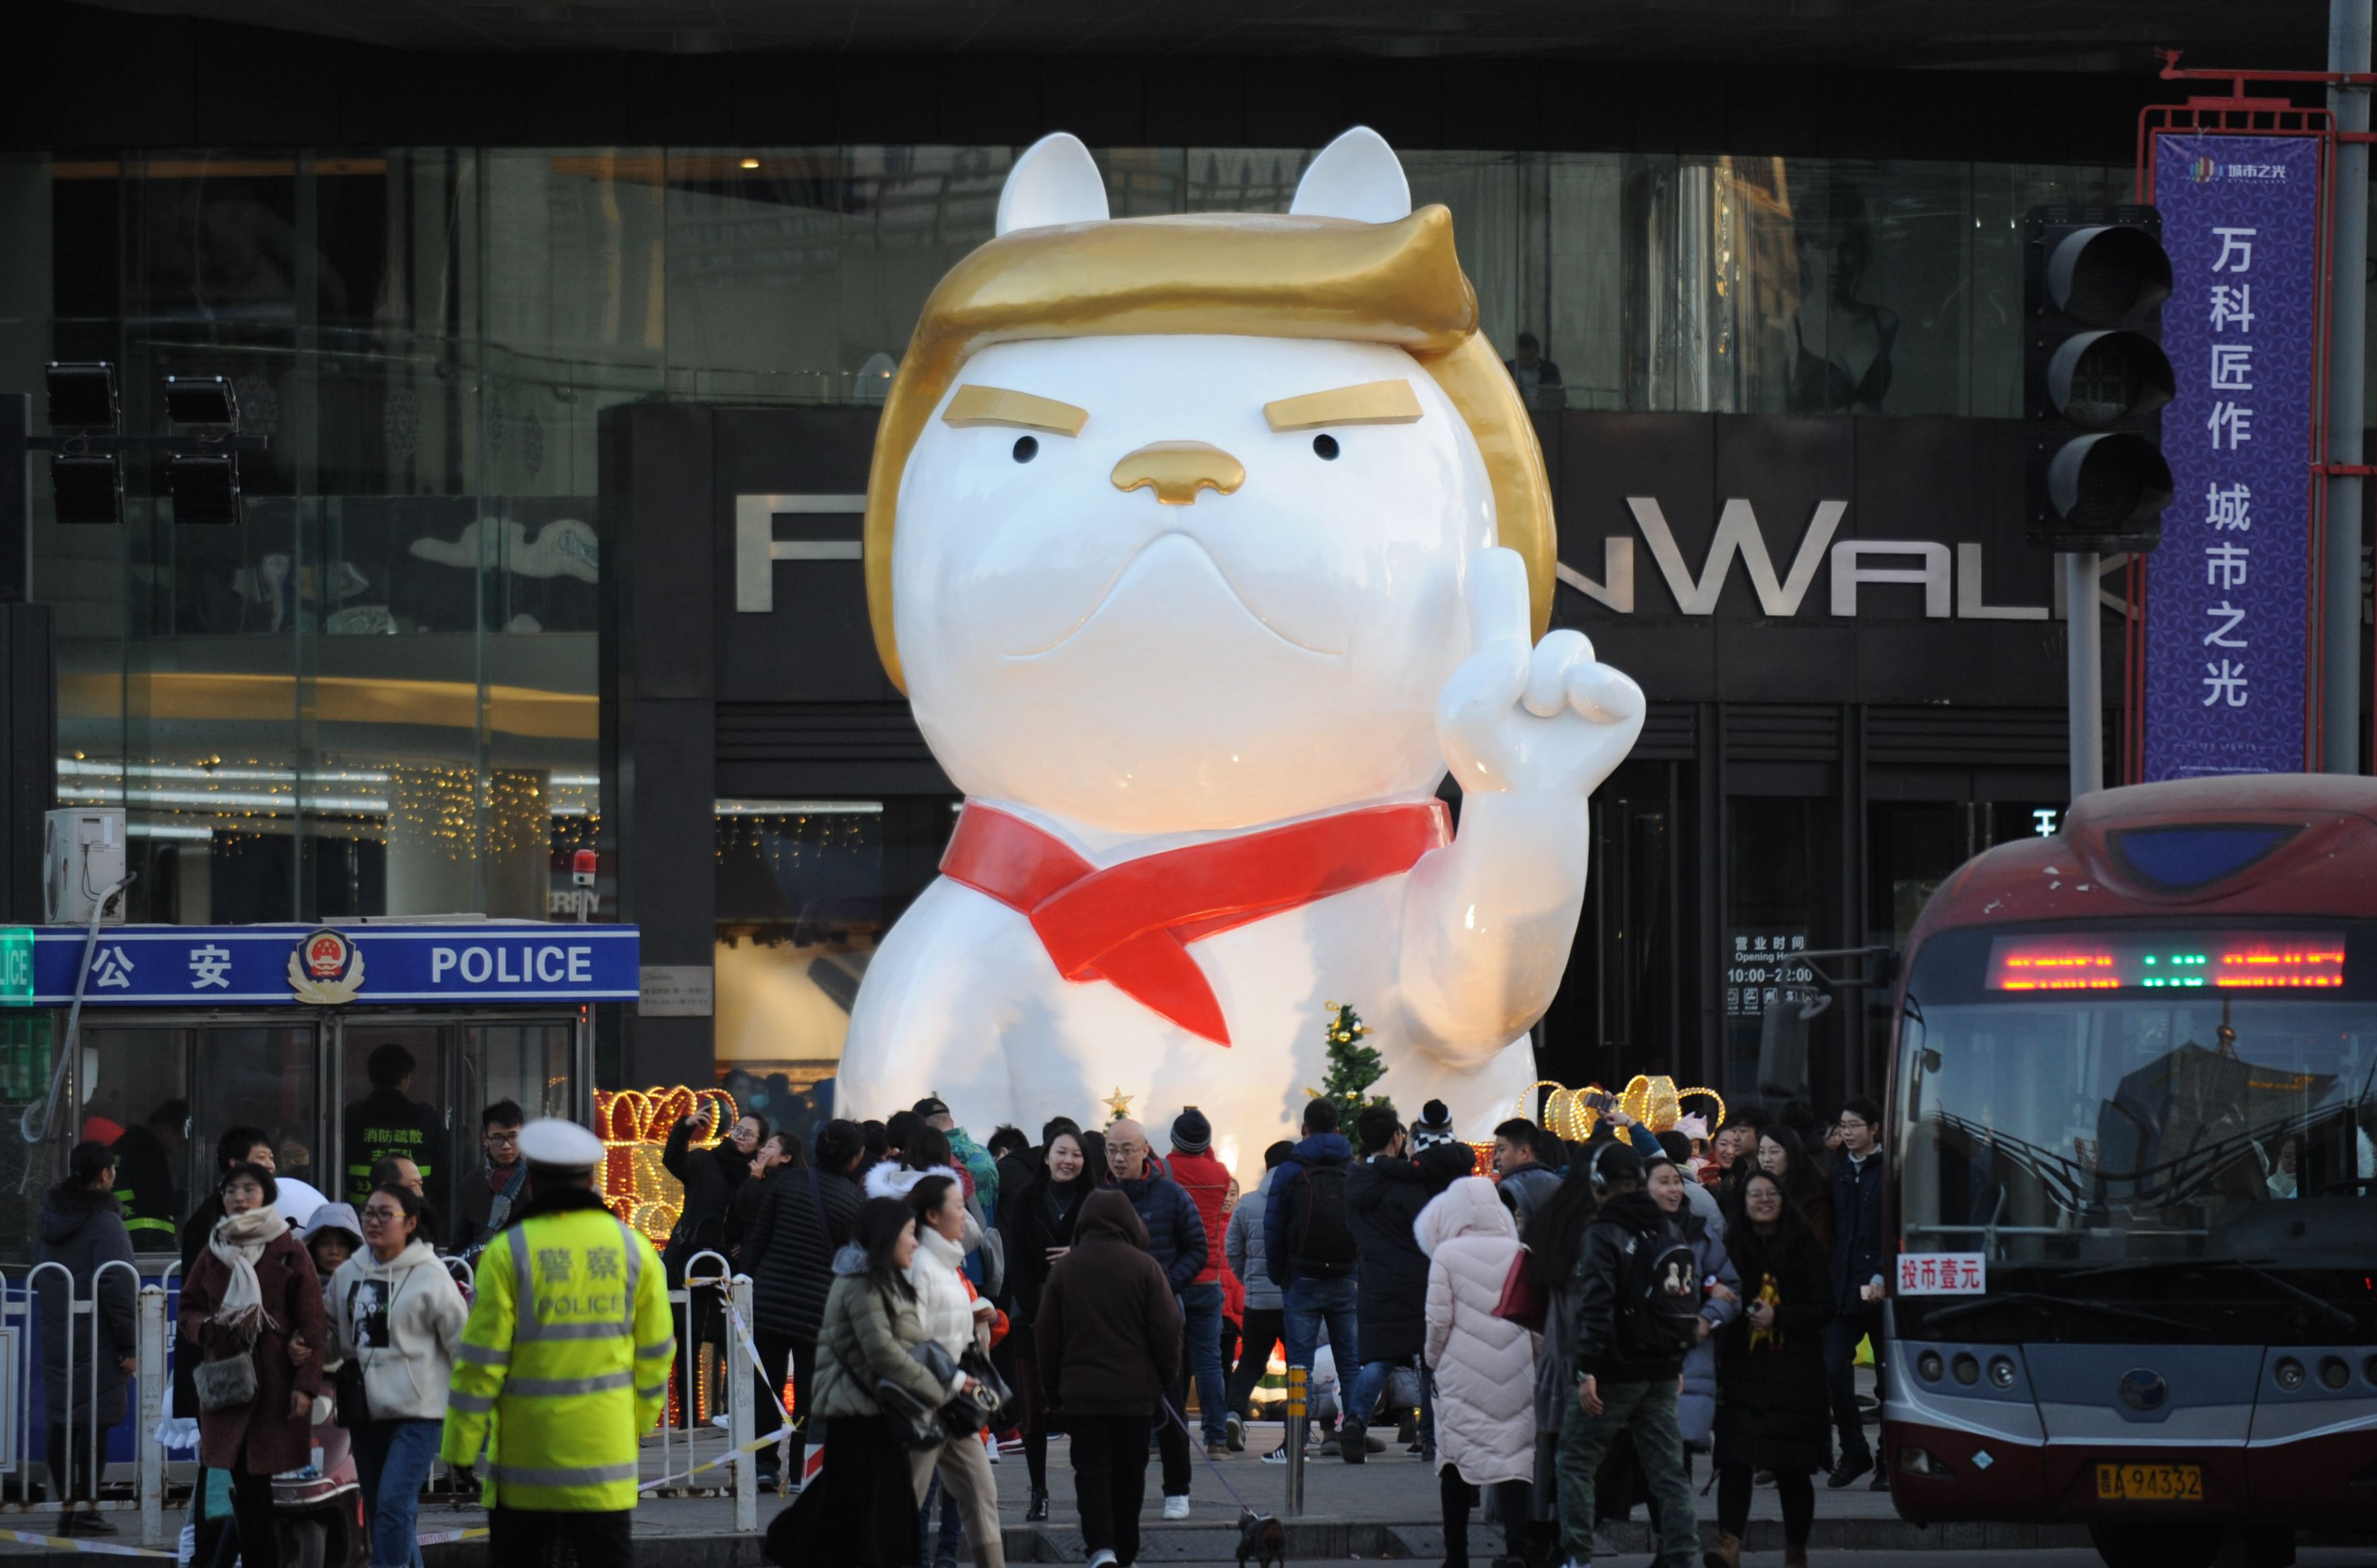 A dog sculpture resembling President Donald Trump outside a shopping mall in Taiyuan, China on on Dec. 24, 2017.